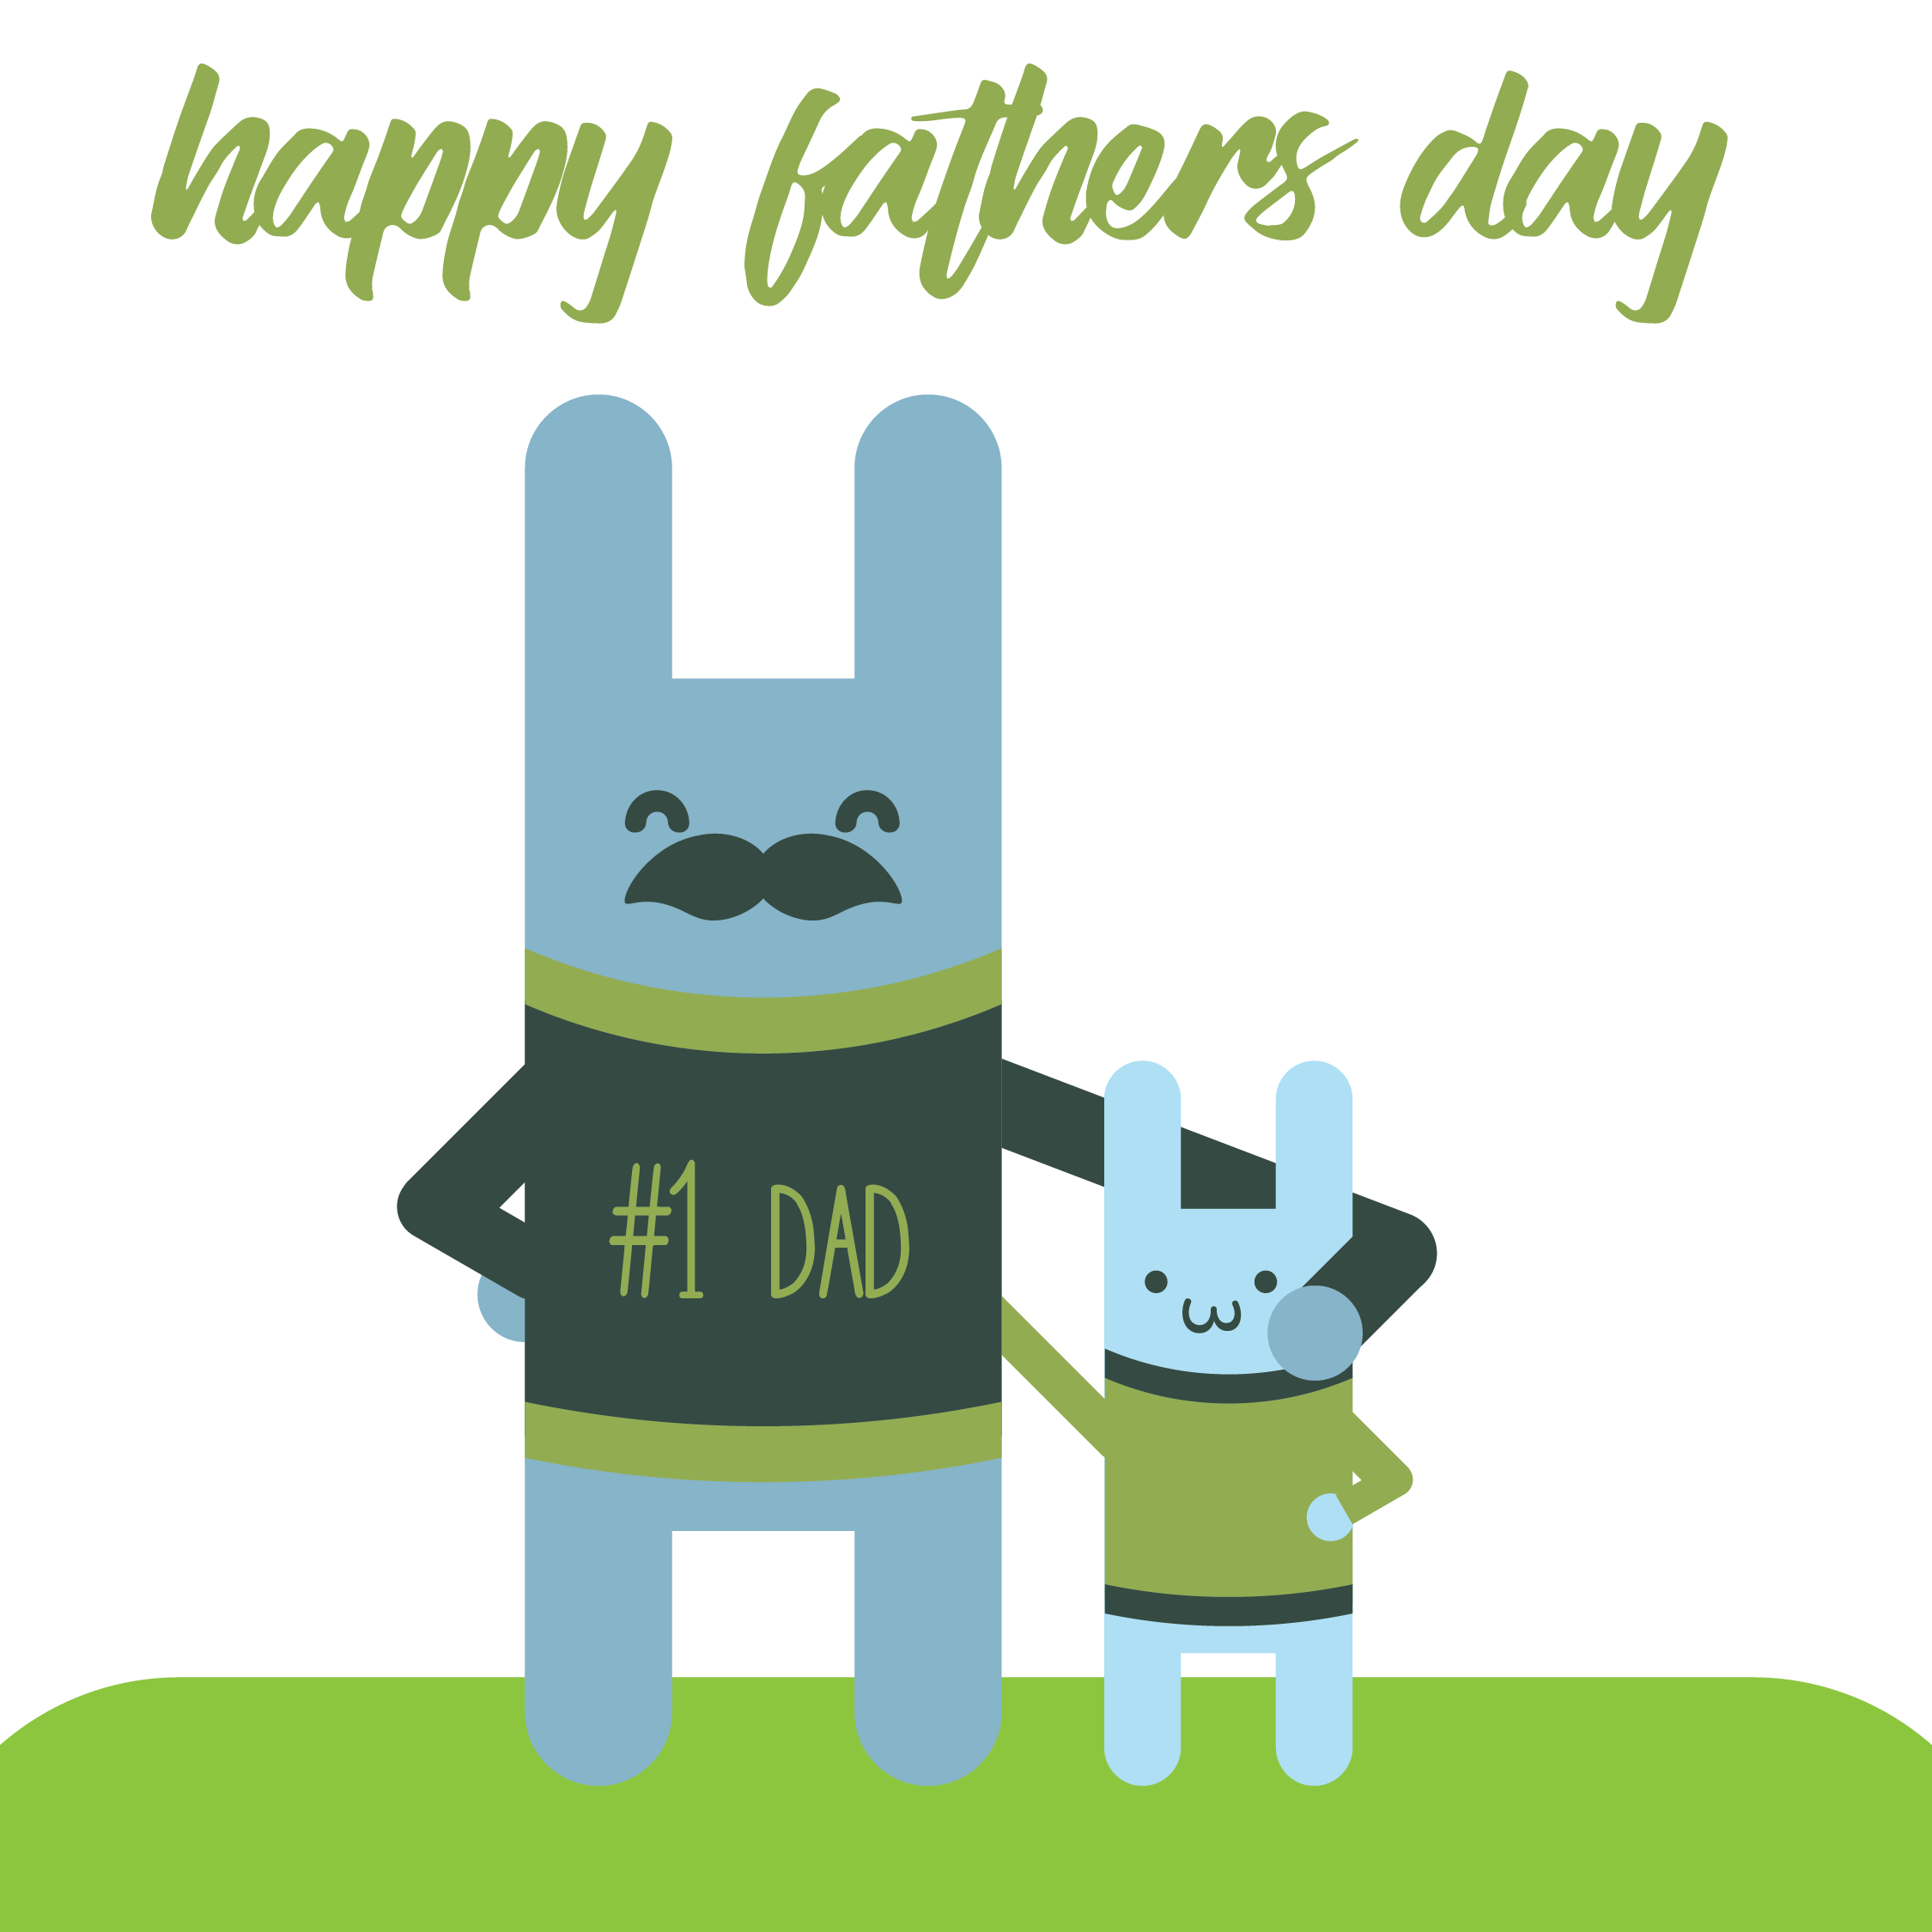 Father's Day Fun Facts Infographic